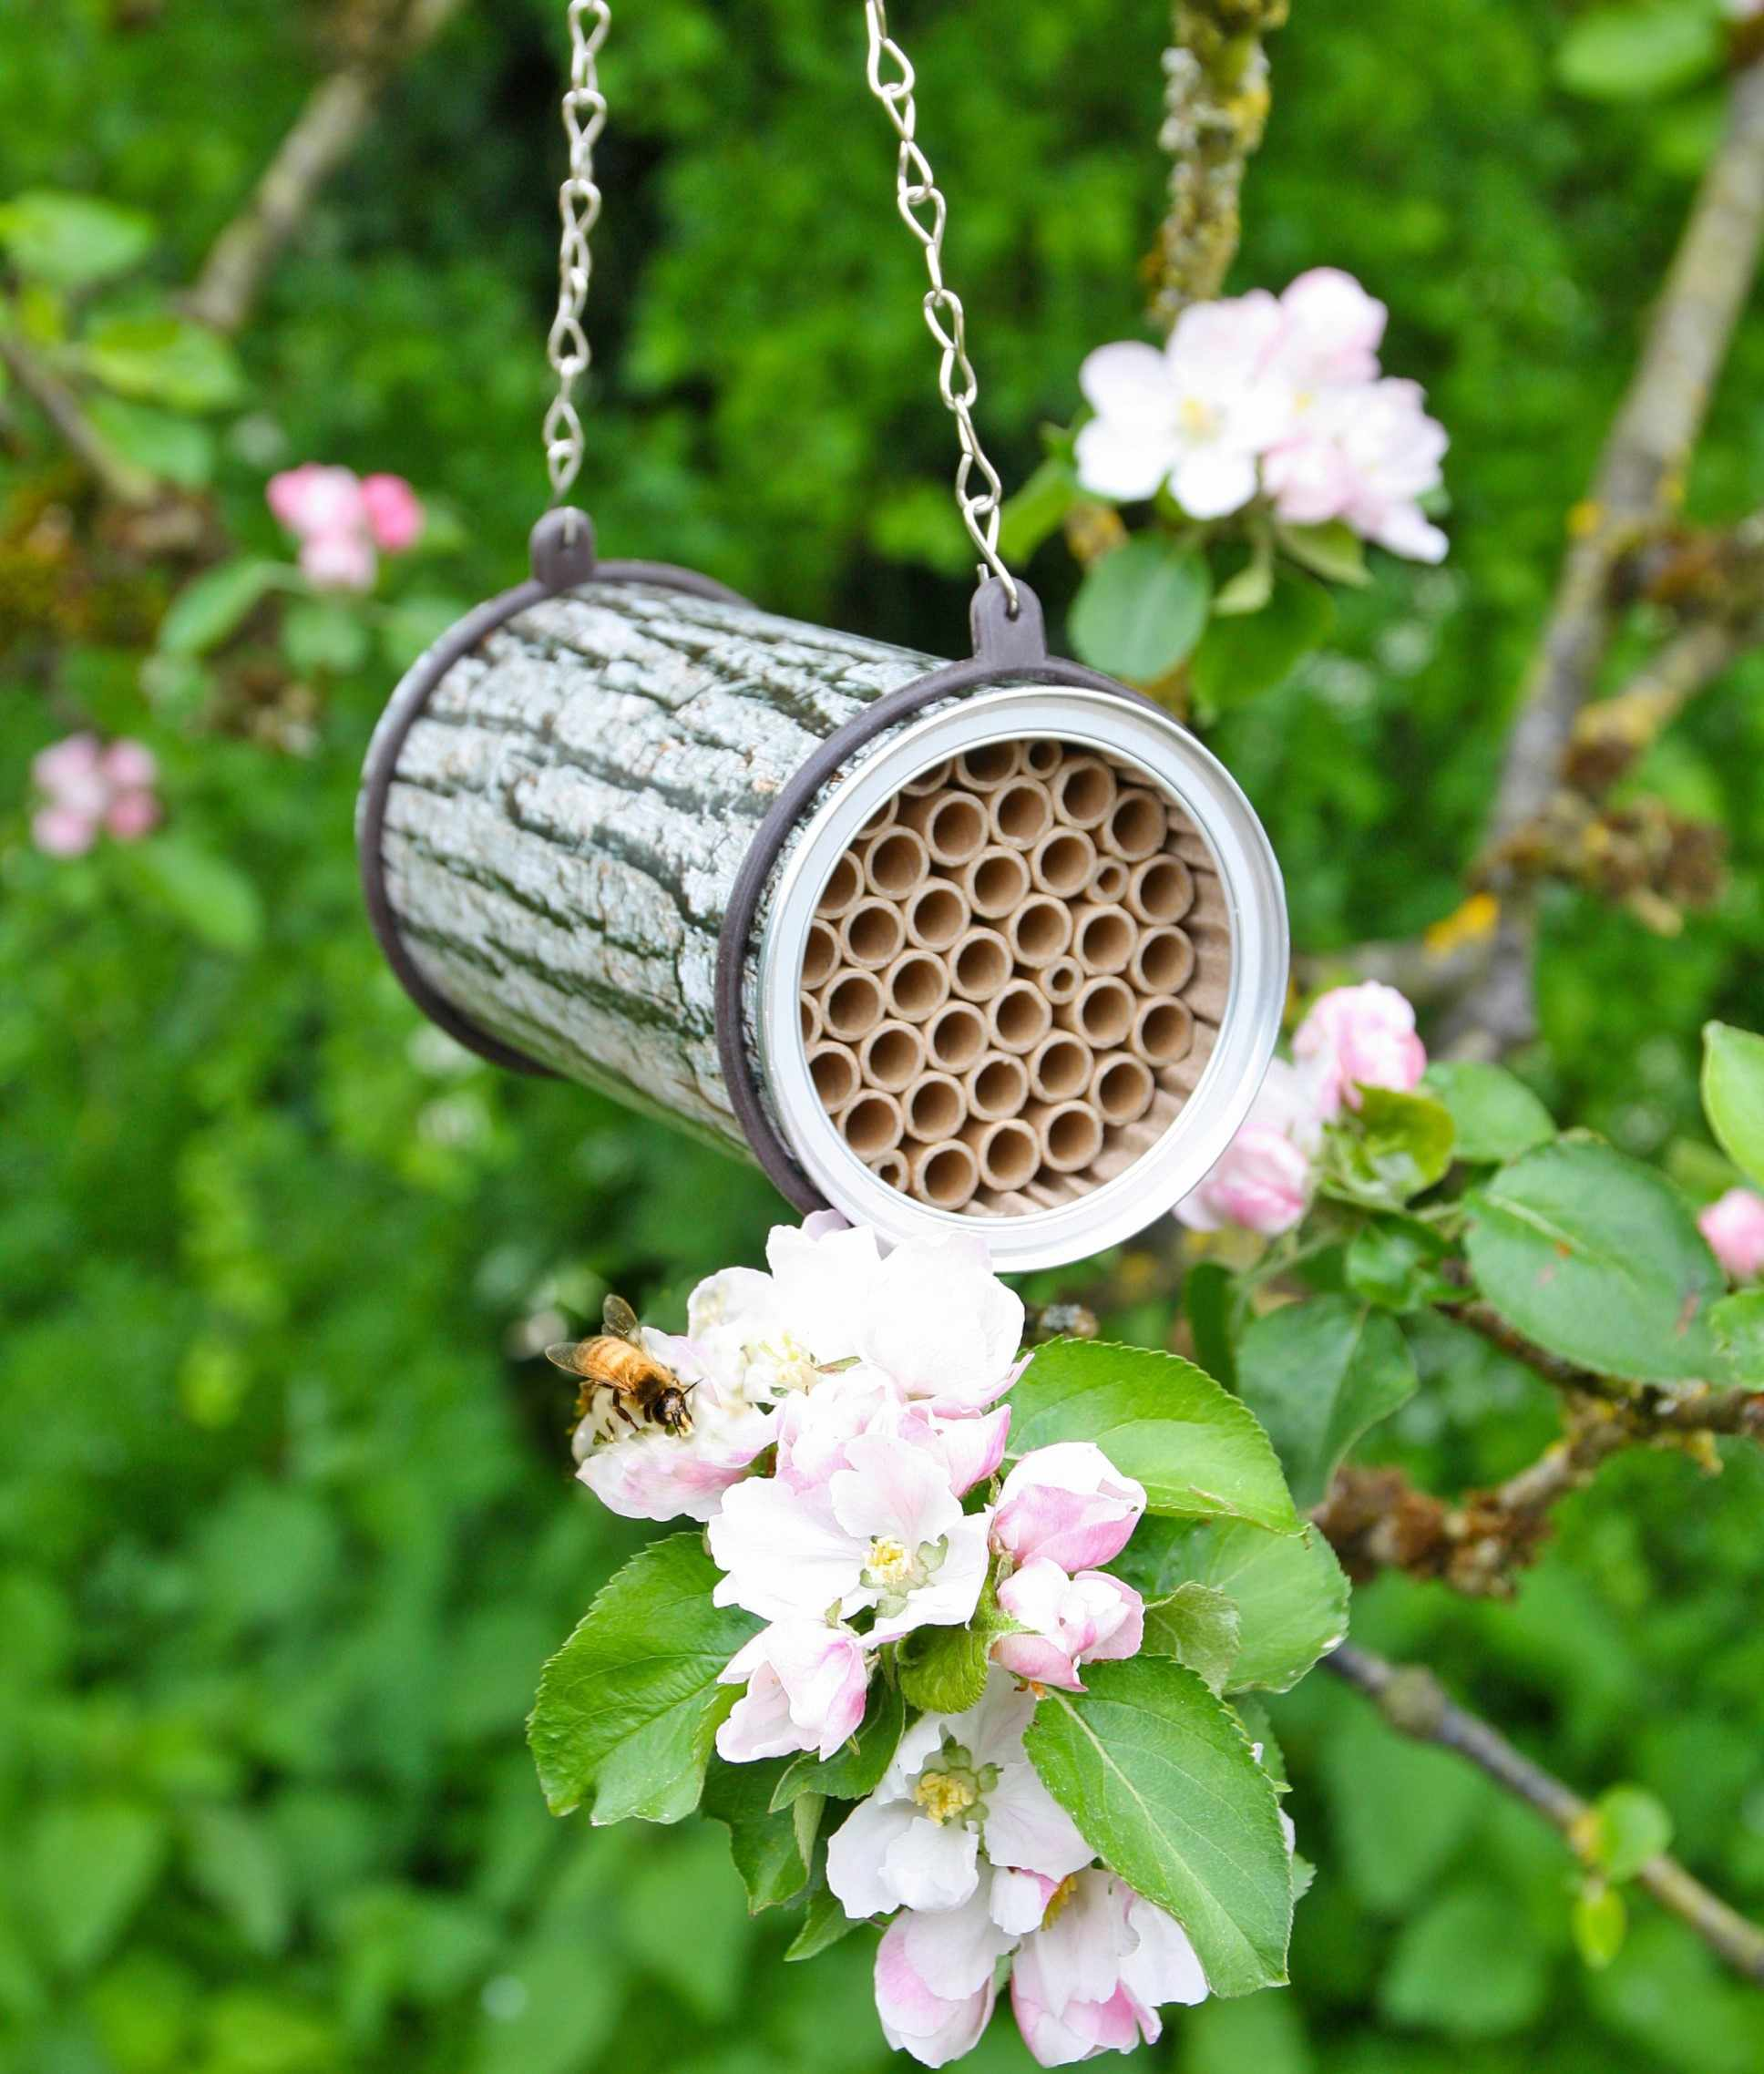 Bee nester_competition prize